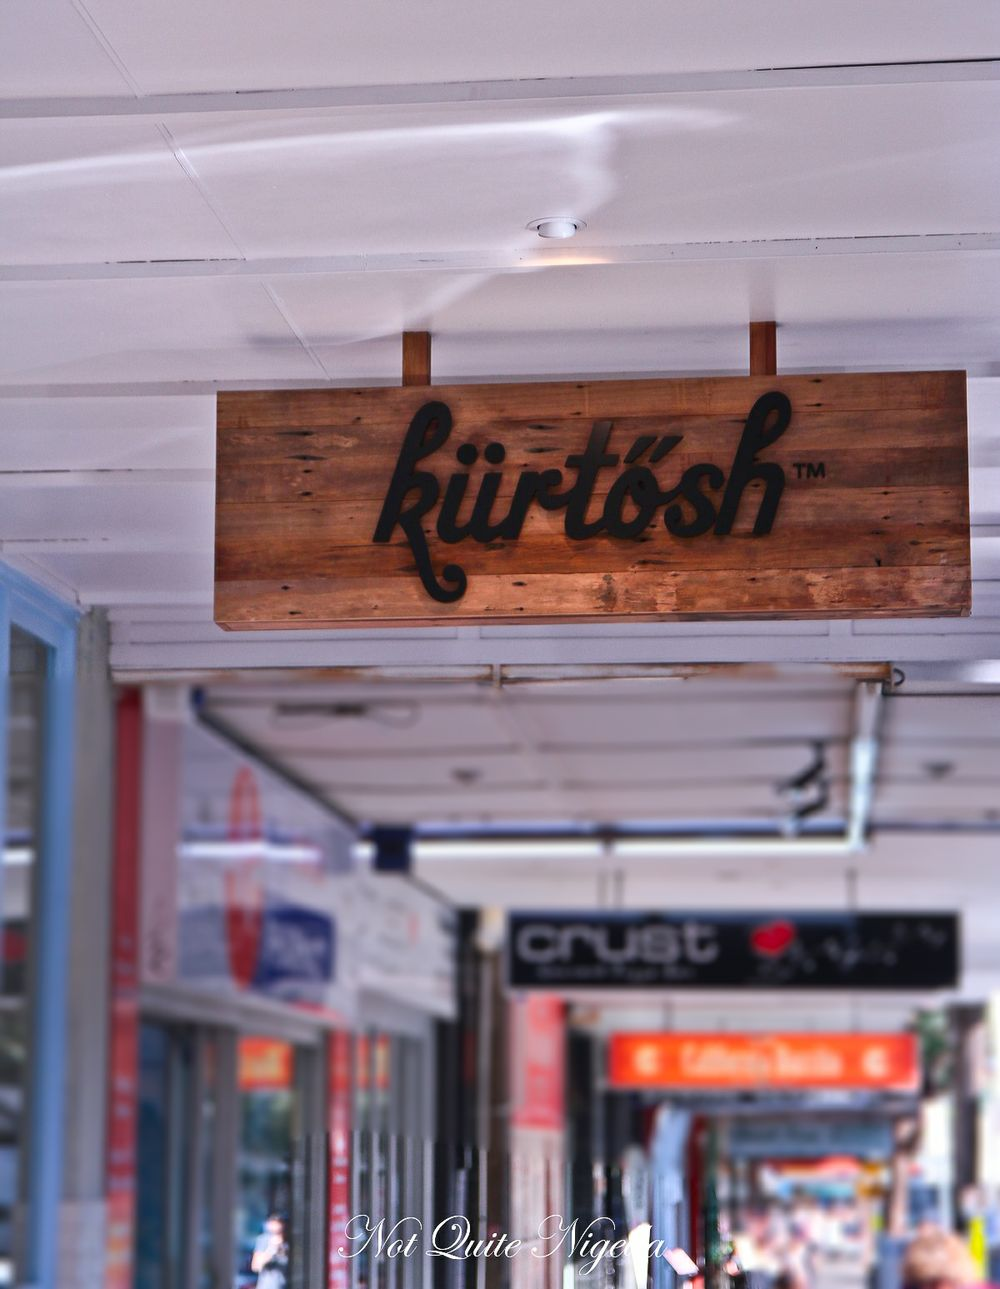 kurtosh surry hills